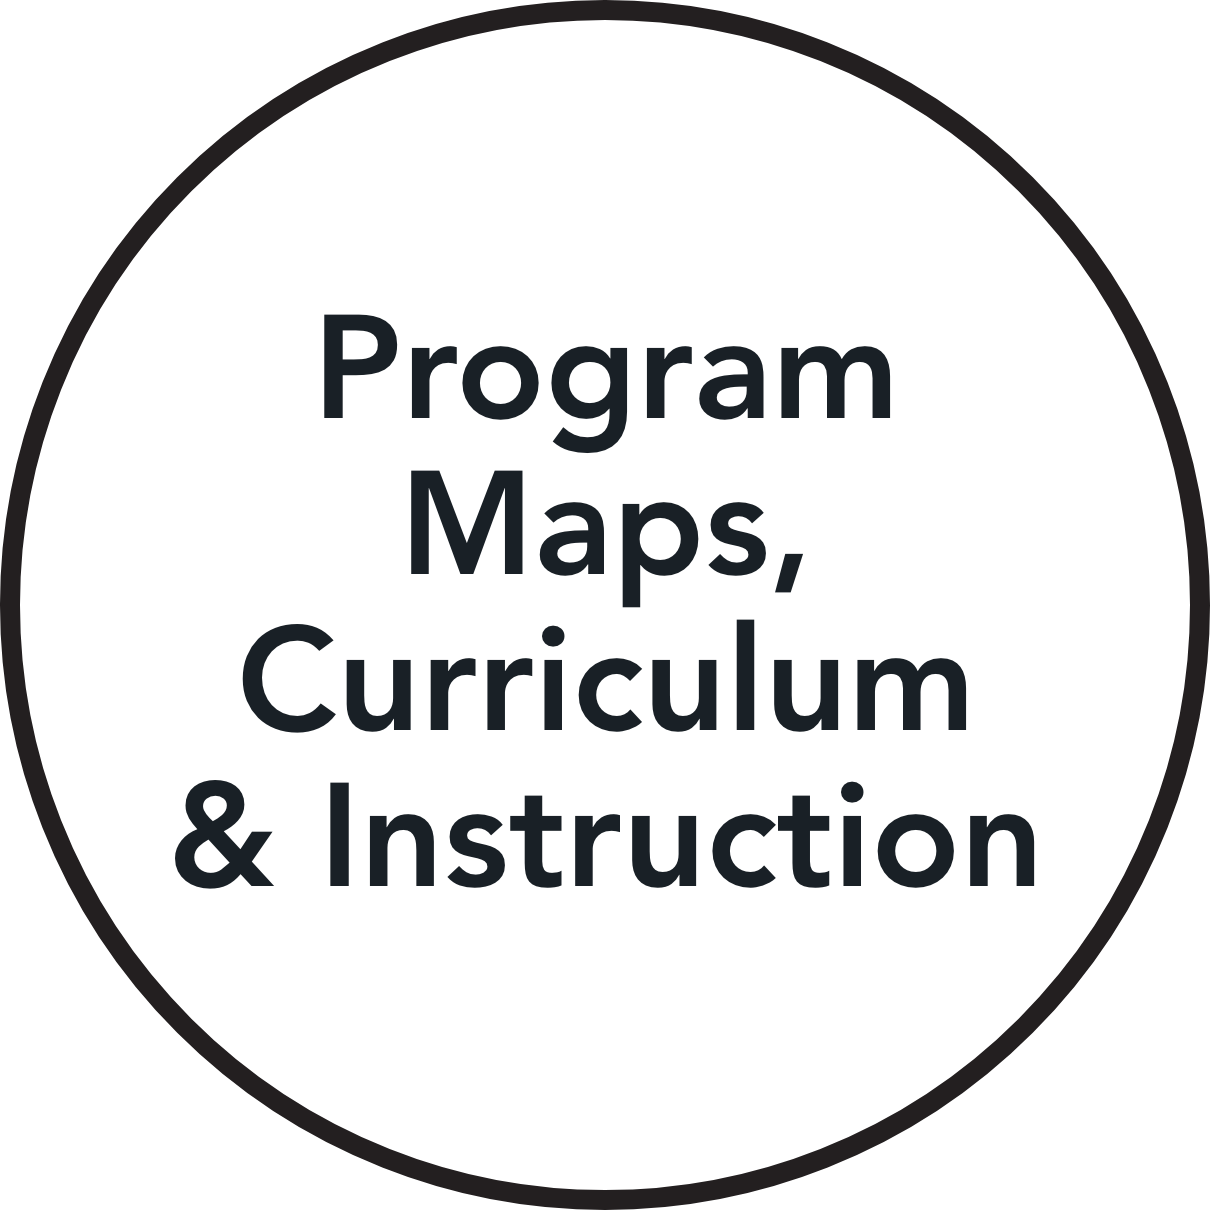 Program Maps, Curriculum, and Instruction